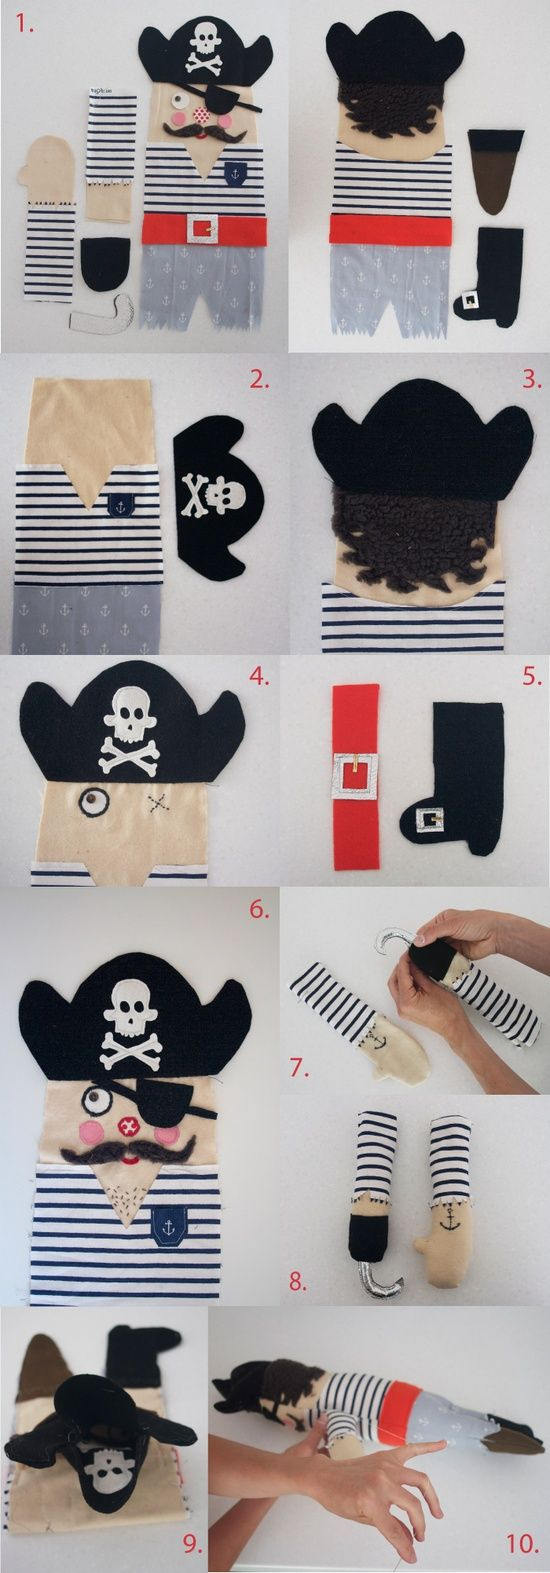 Pirate crafts for toddlers - Diy Pirate Doll